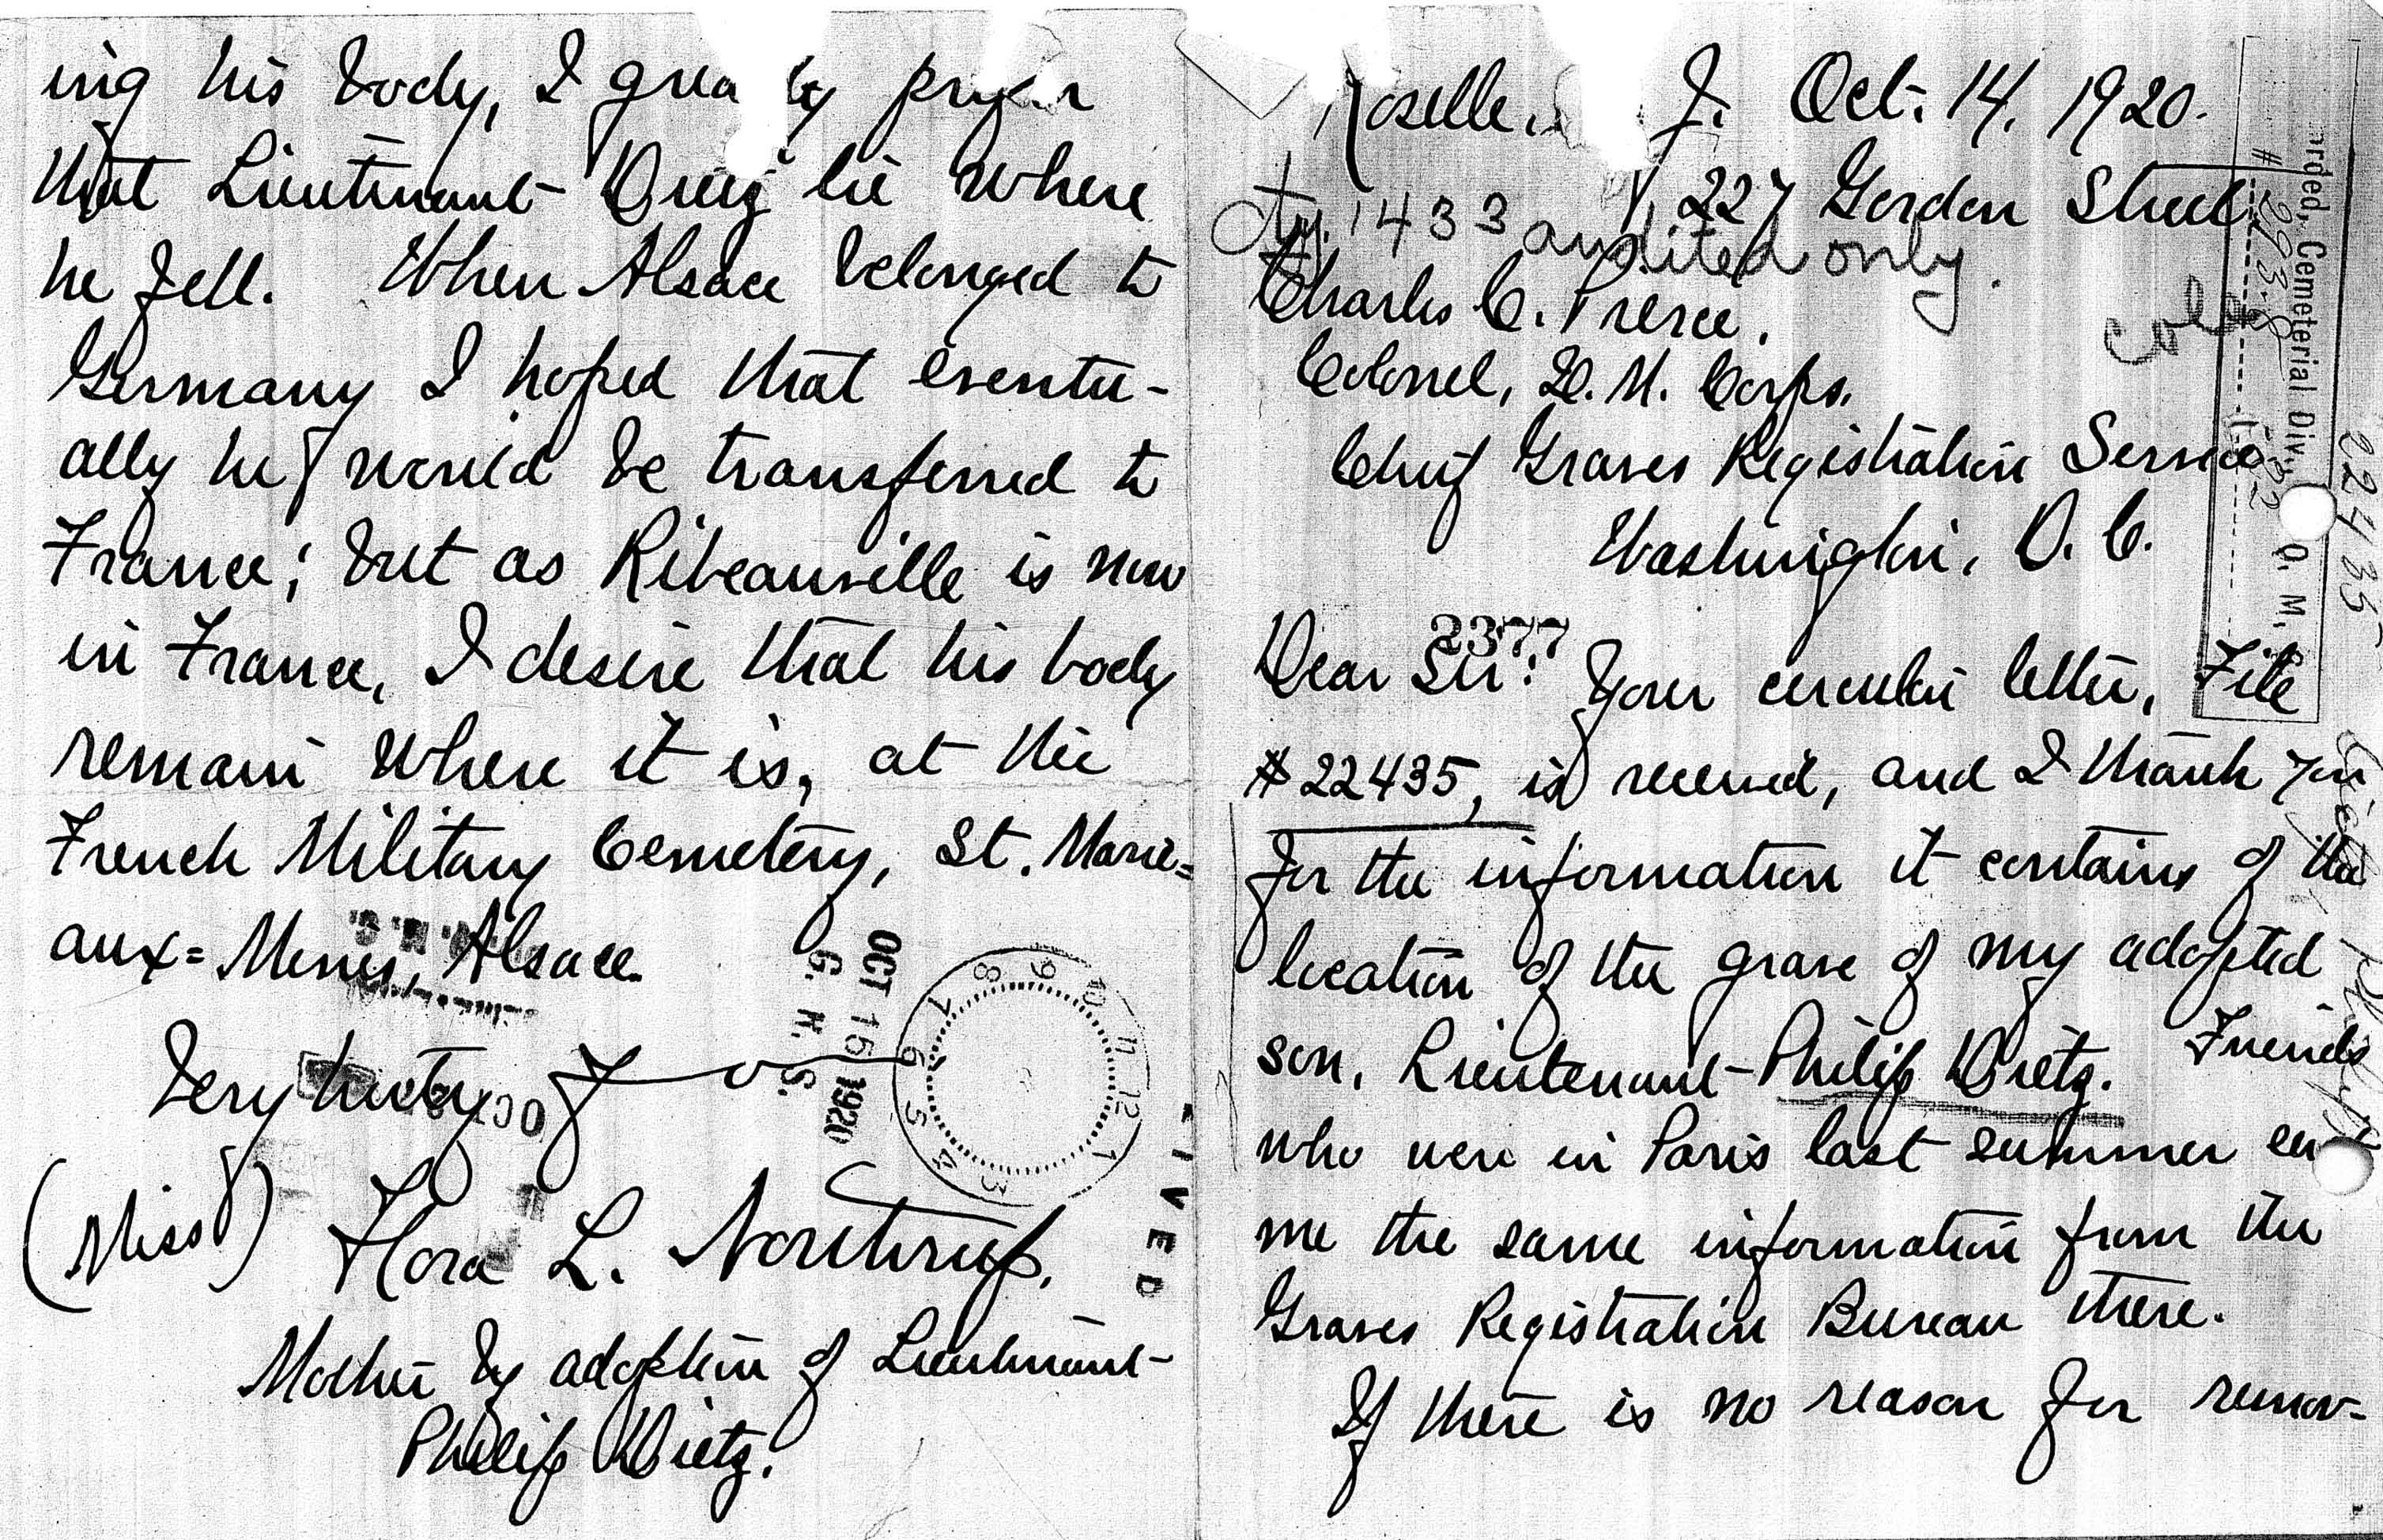 A handwritten letter from Flora Northrup indicating her wish that Dietz's body remain in the cemetery in Sainte-Marie-aux-Mines.